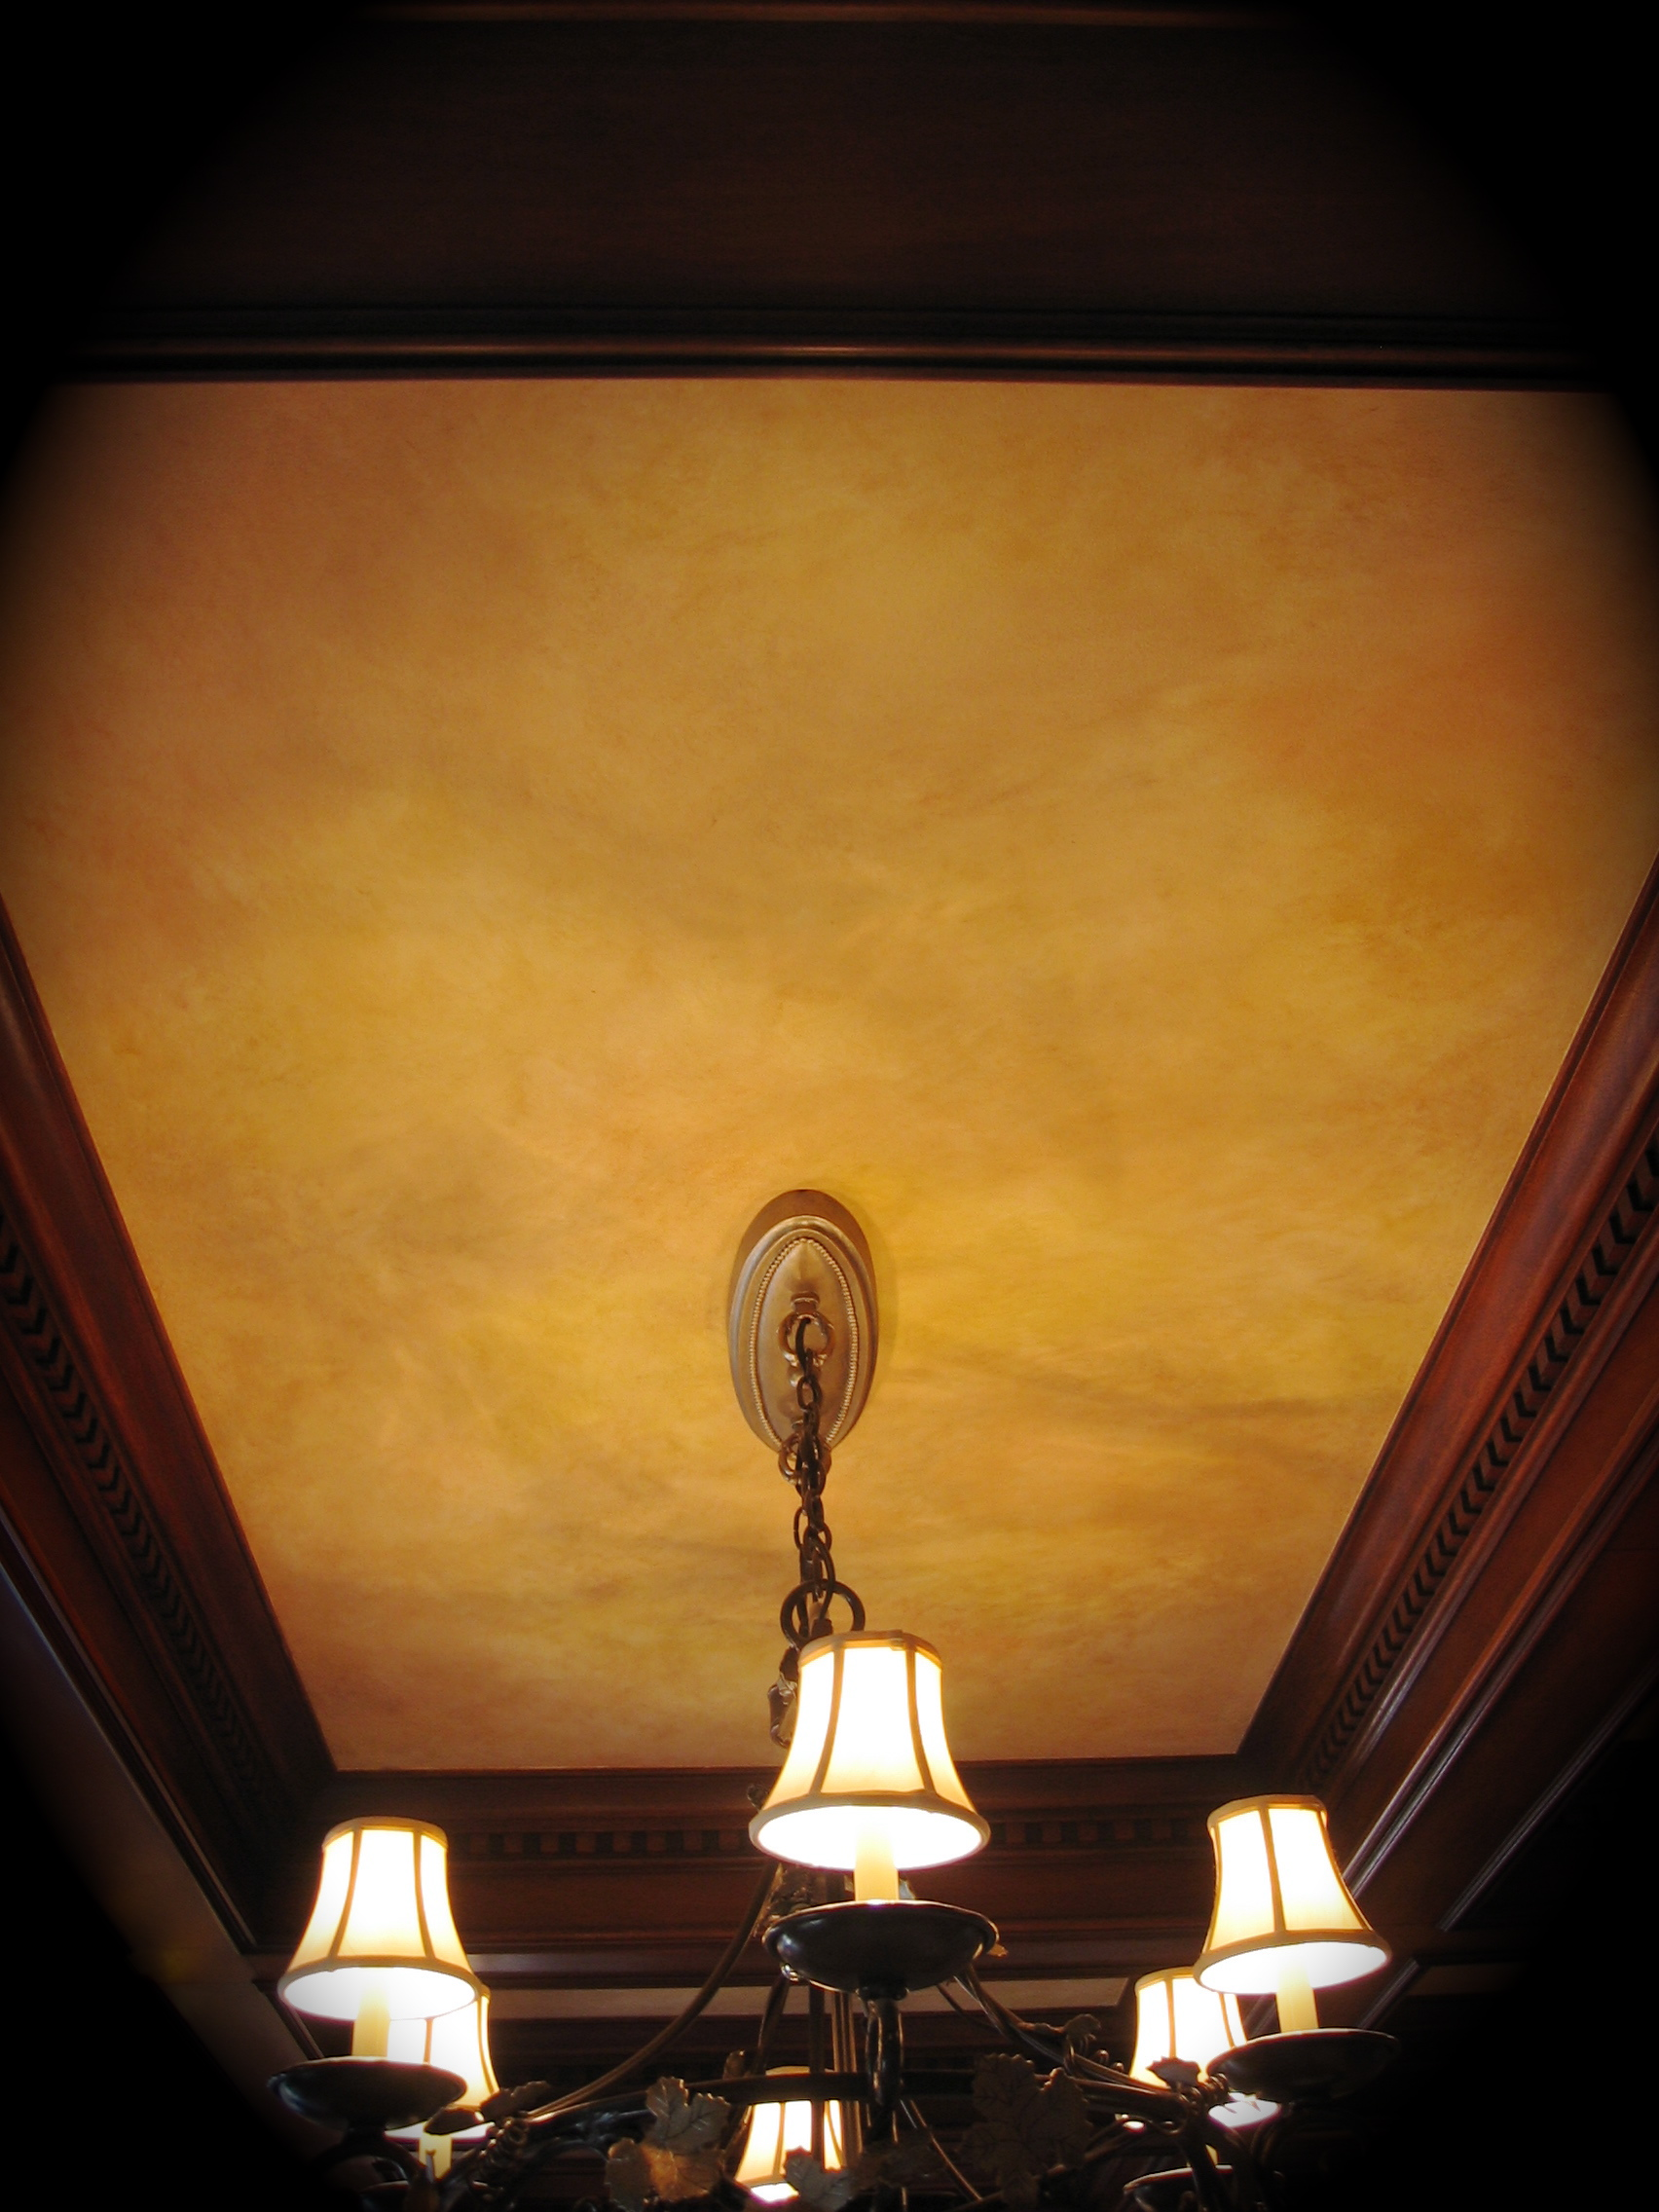 Color-wash on a ceiling